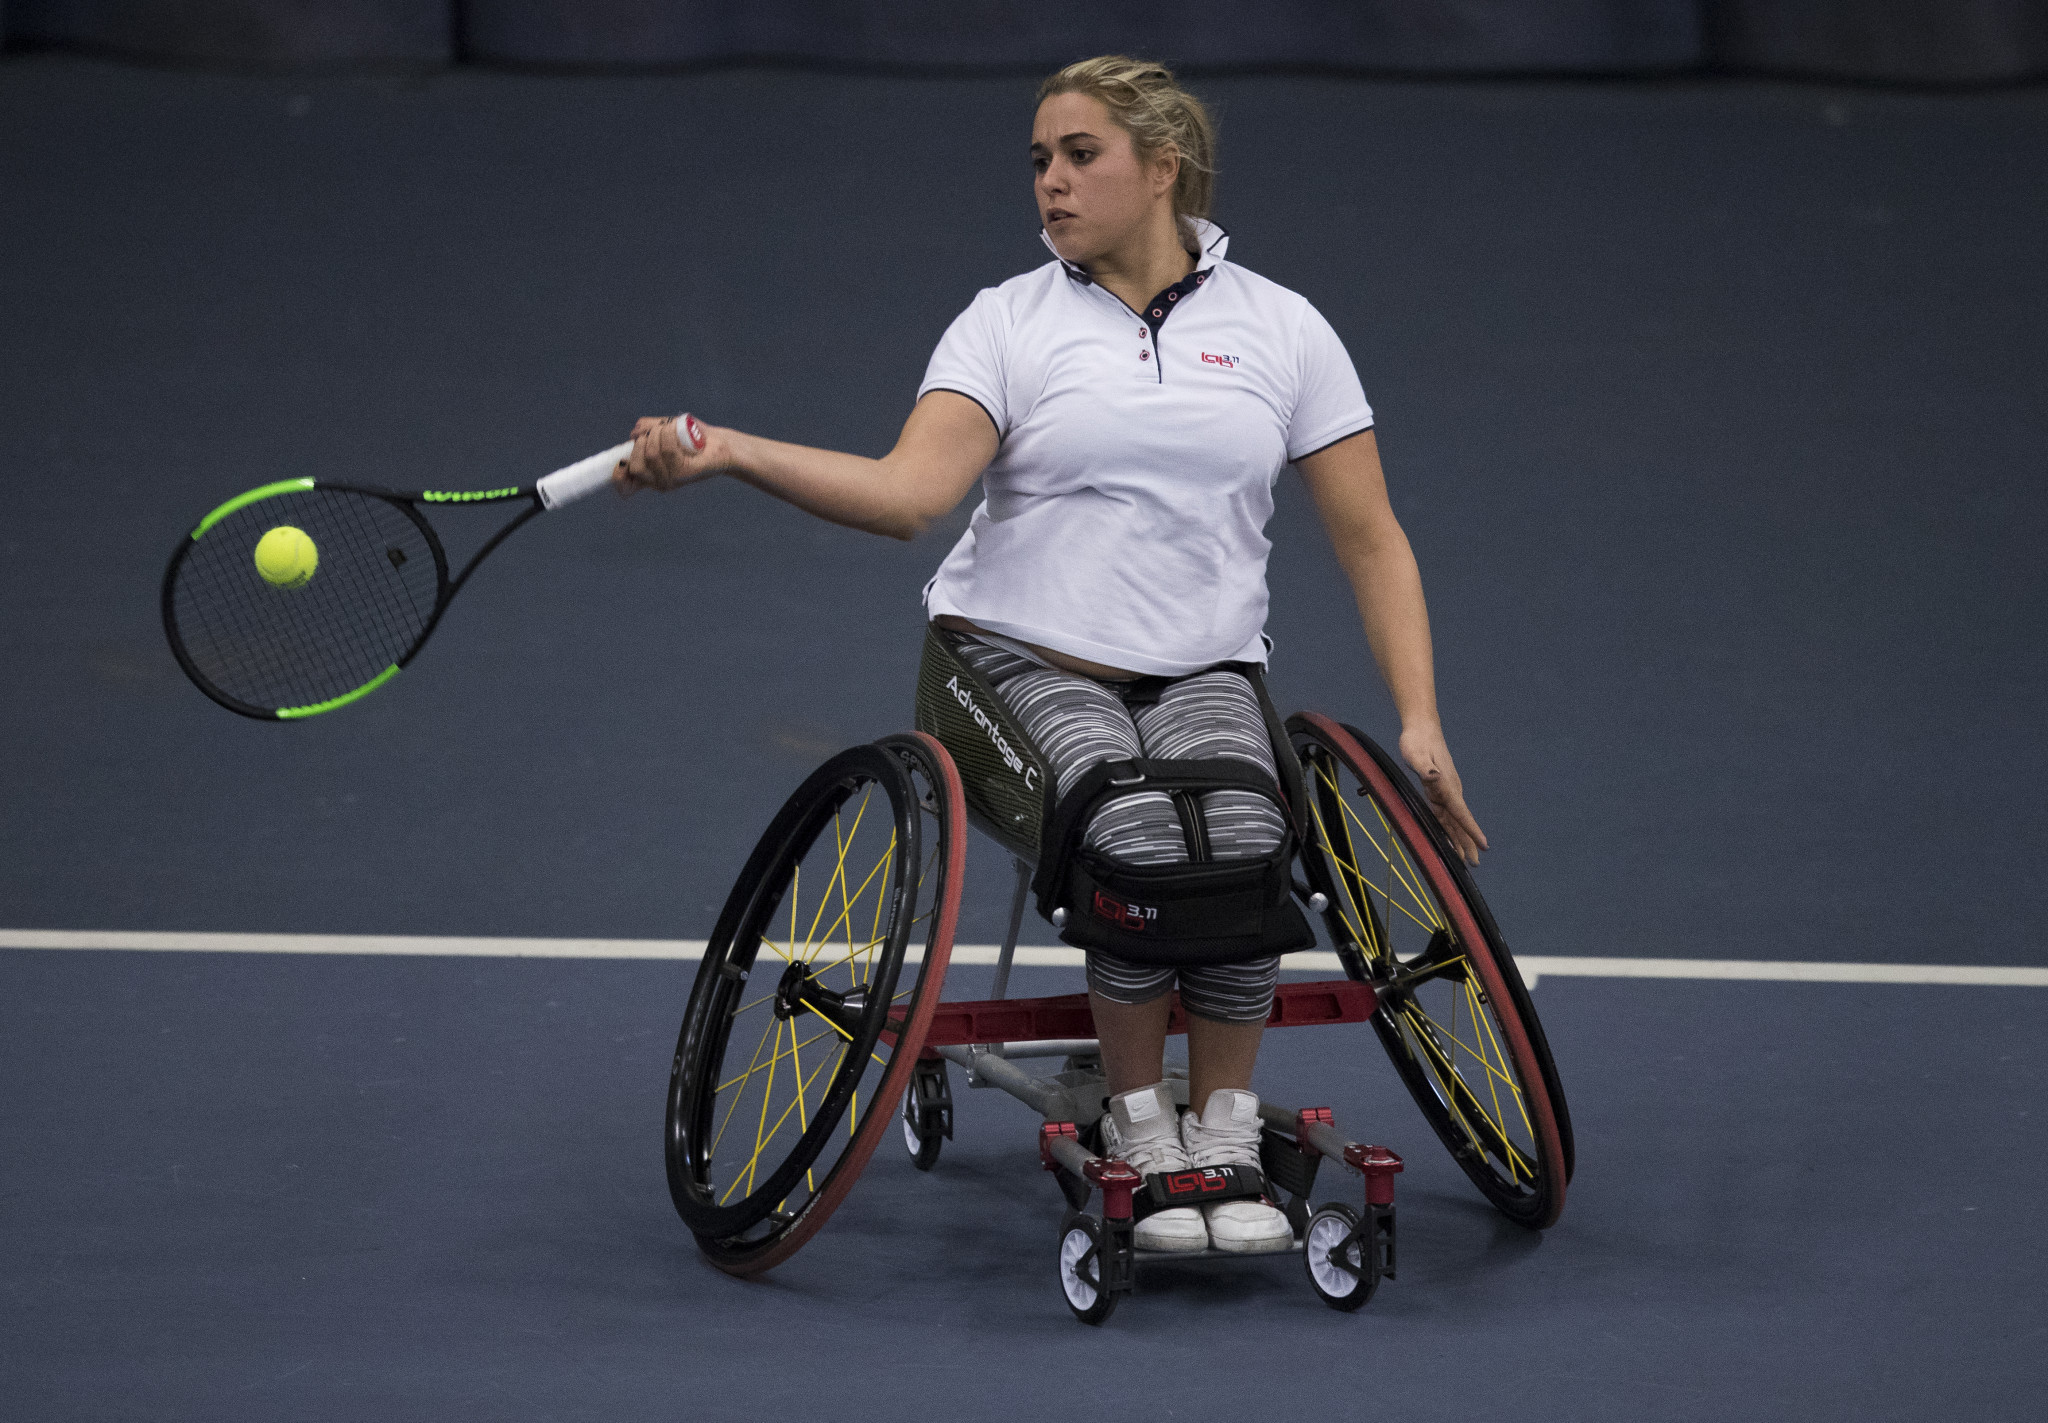 Capocci earns women's singles semi-final place at Wheelchair Tennis Masters in Orlando